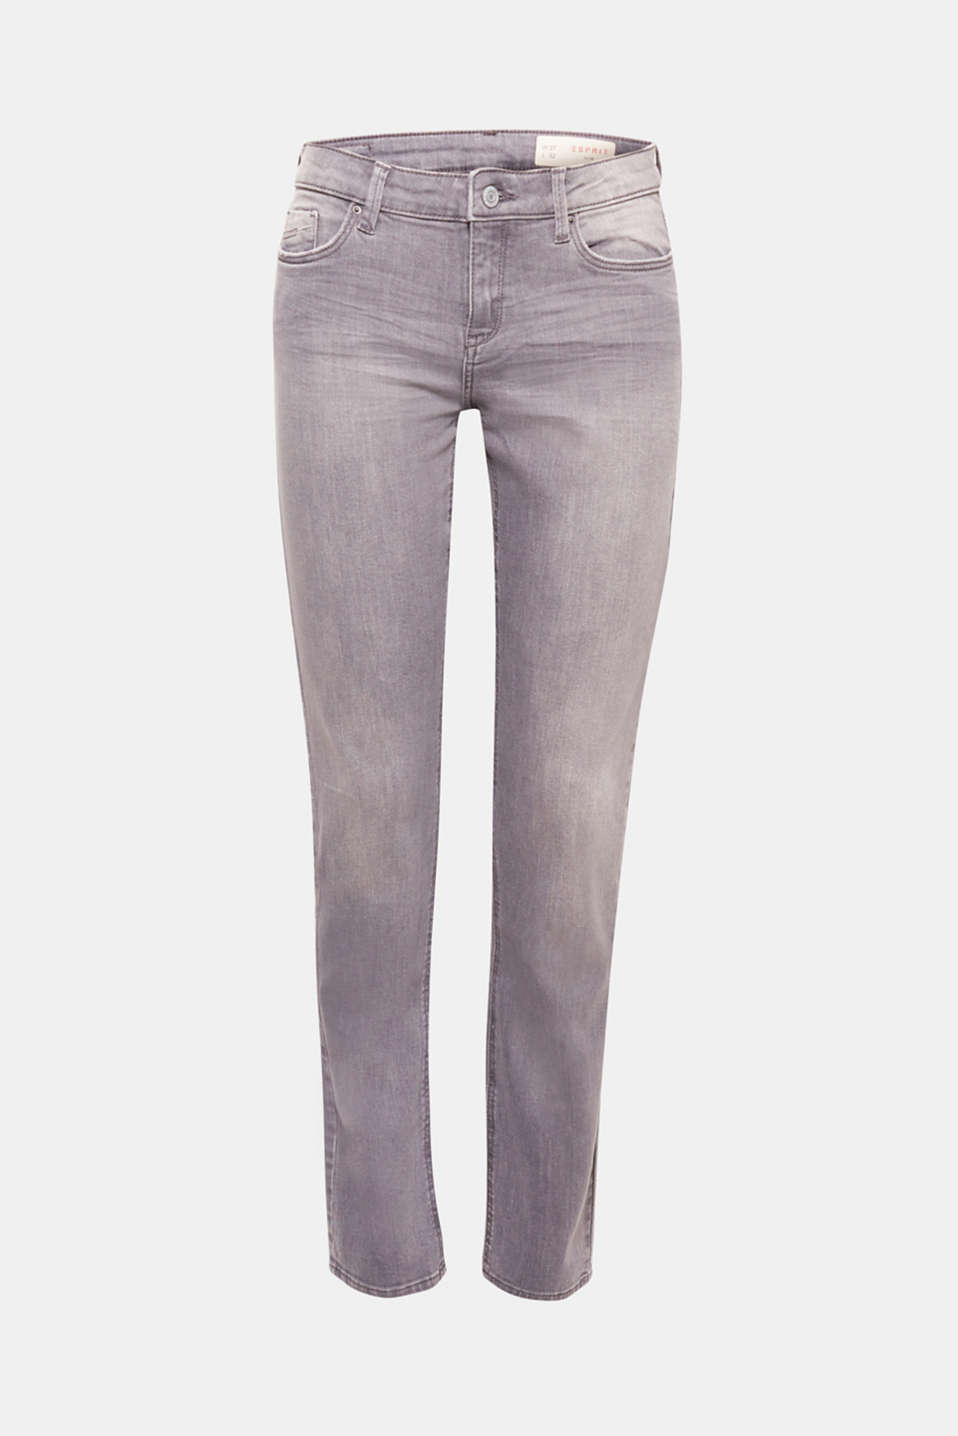 The trendy grey wash featuring faded areas and whiskering gives these sensationally soft jeans made of tracksuit fabric their cool, casual look.